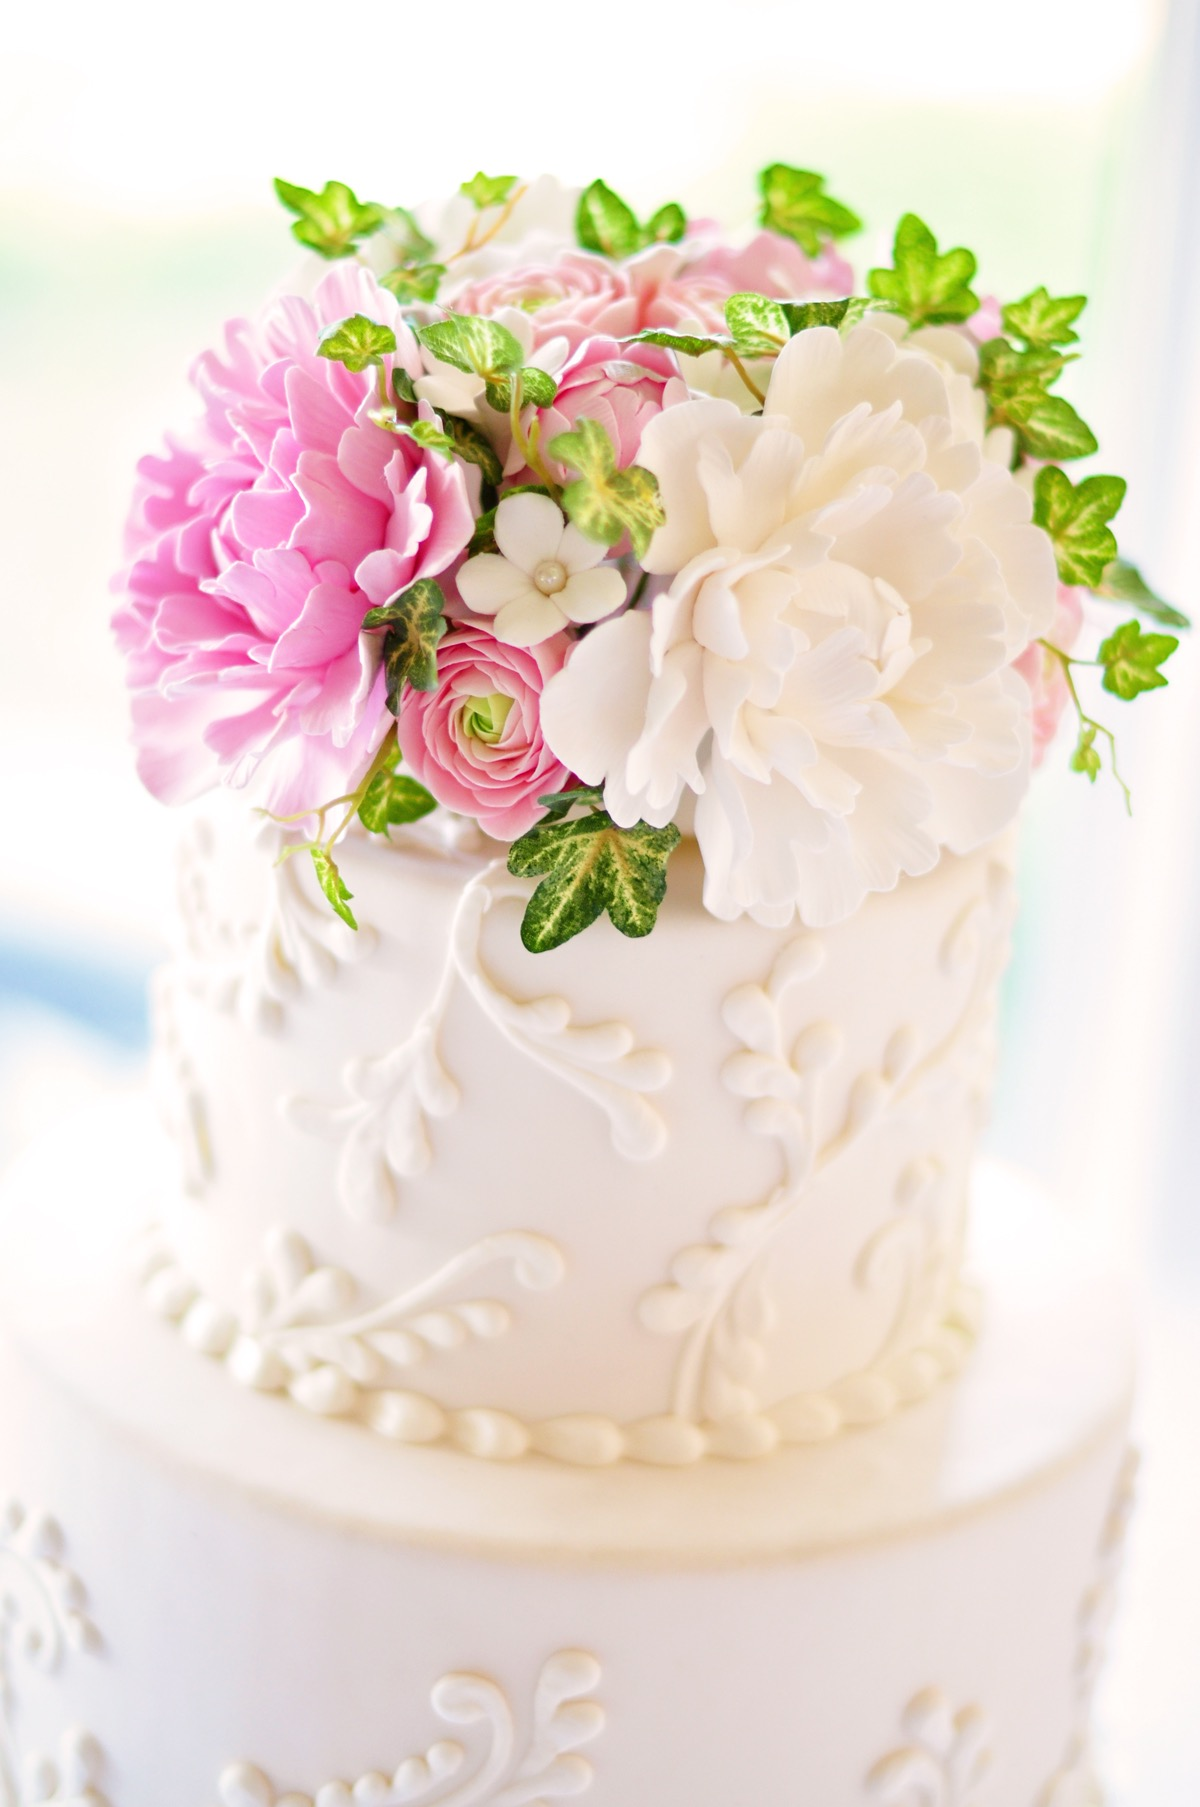 Romantic Pink And Green Wedding Cake (Image 11 of 15)